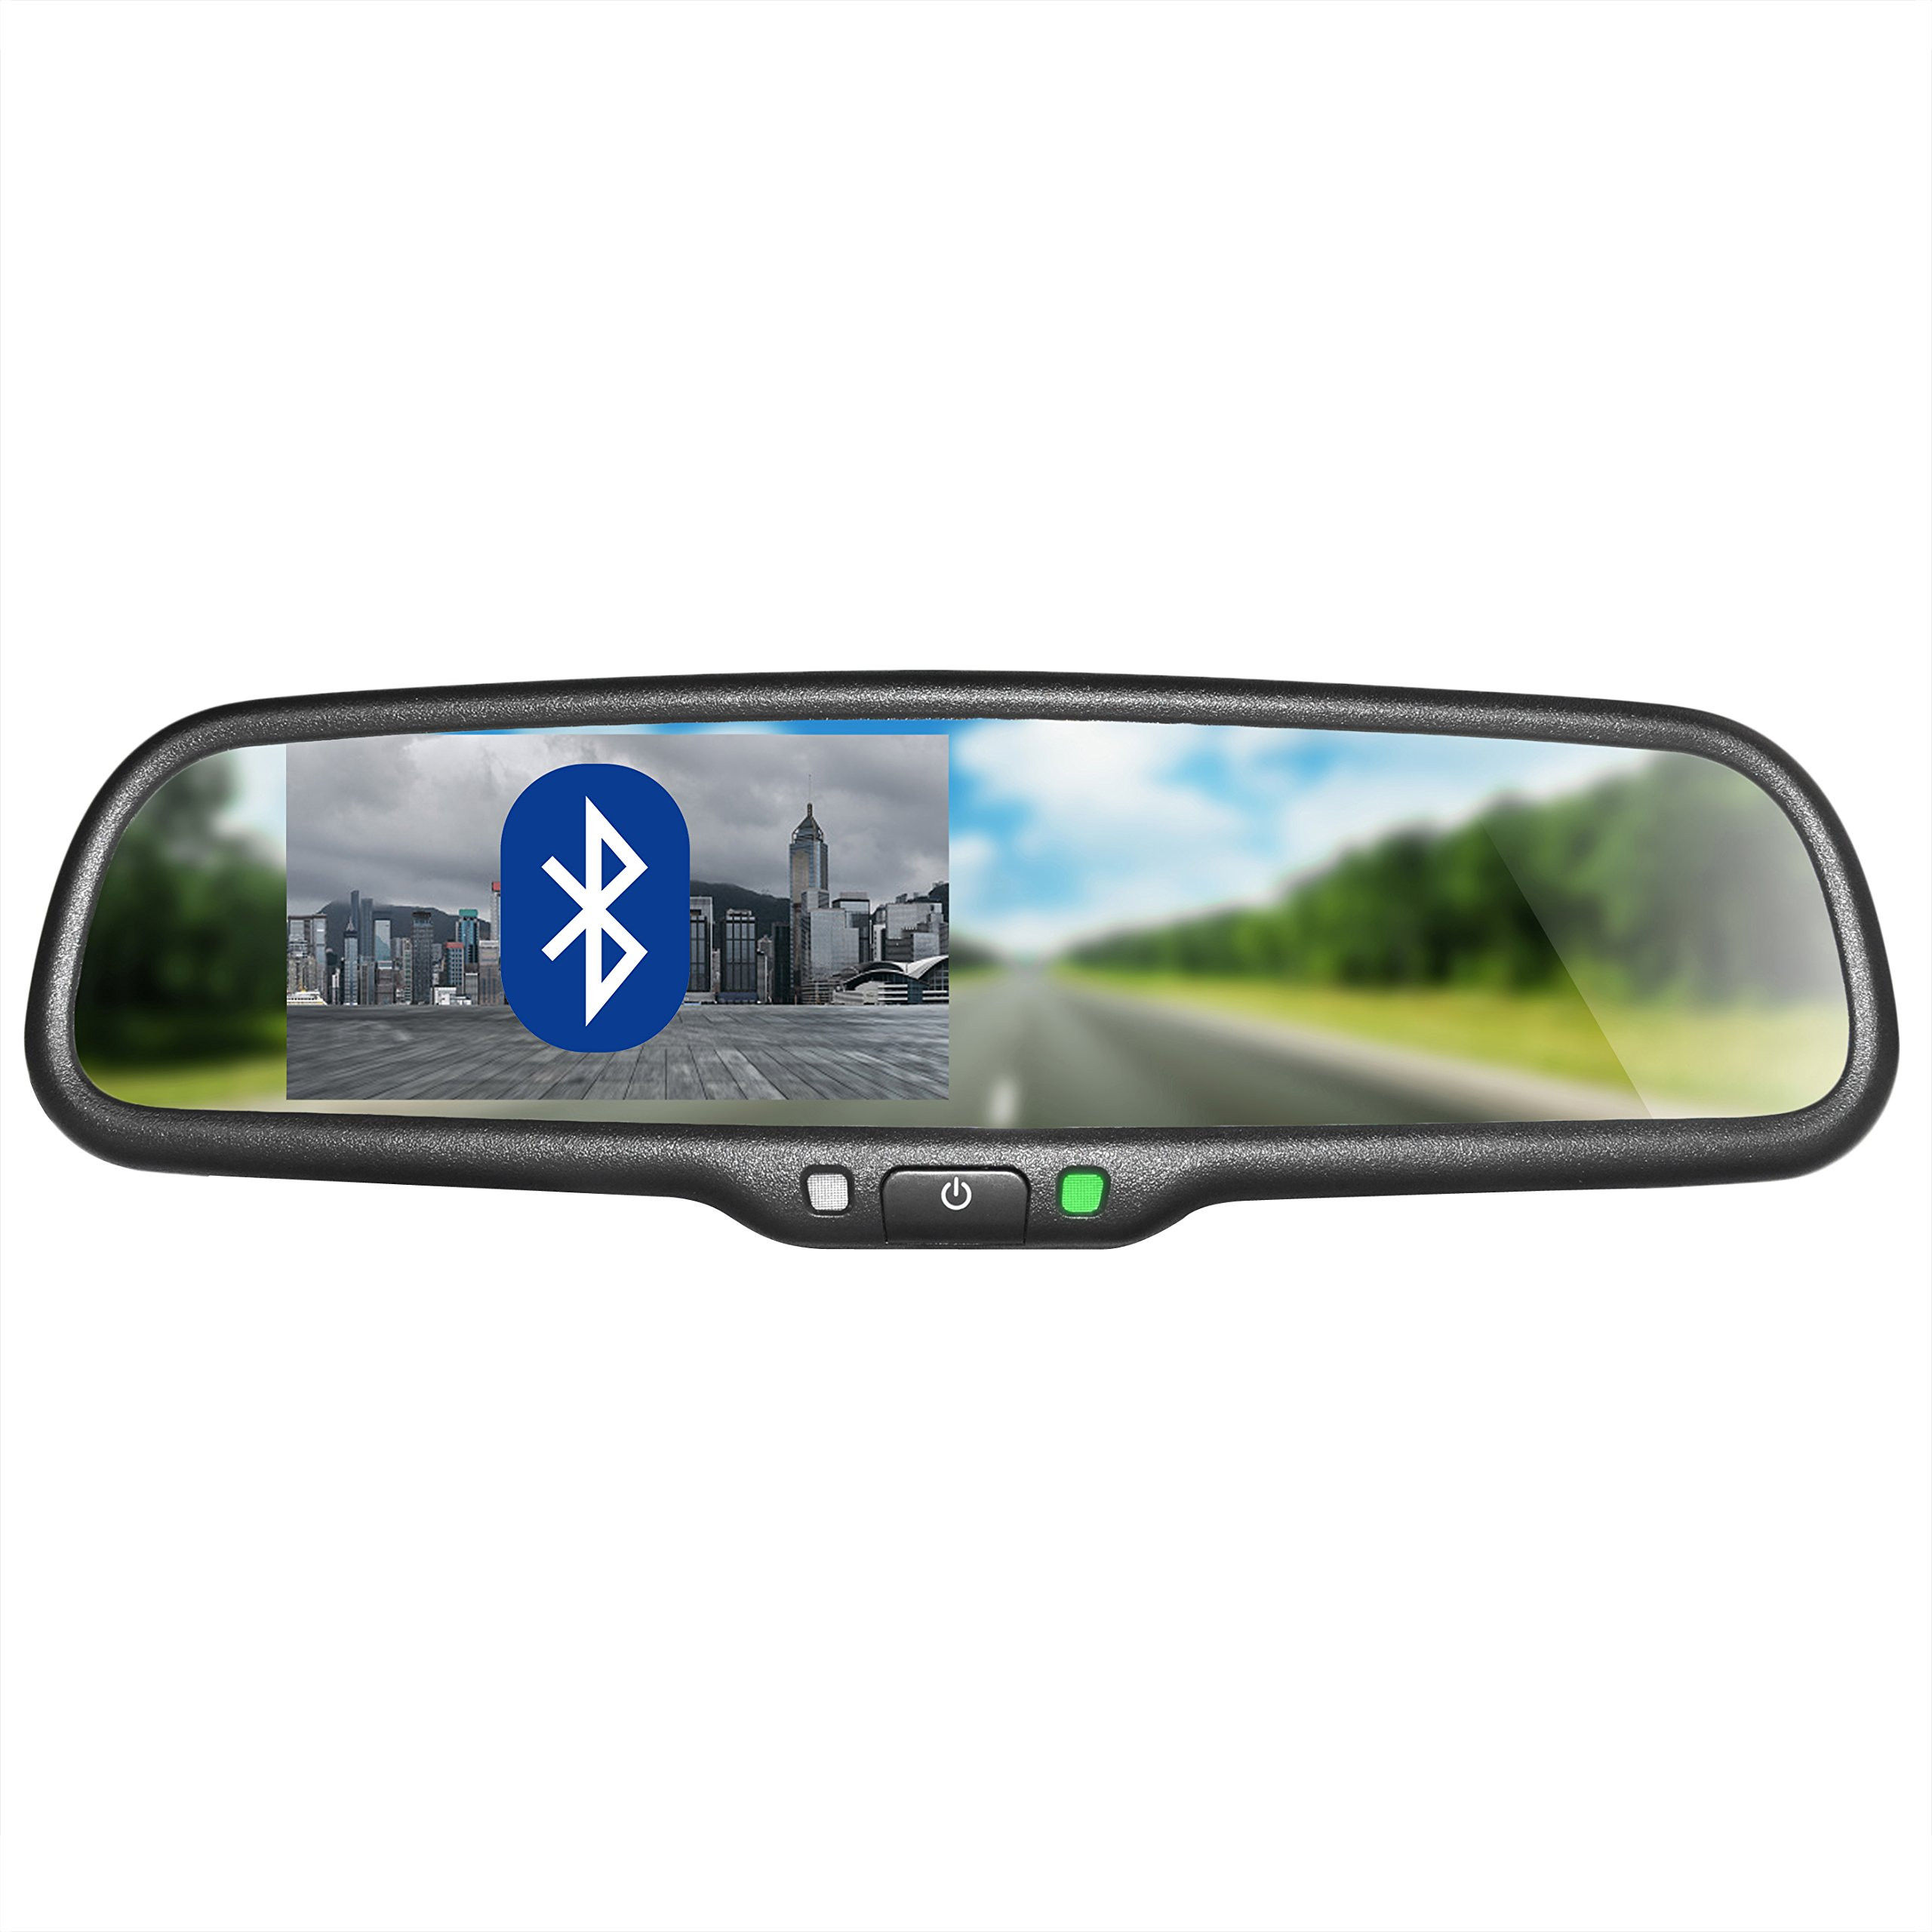 Master Tailgaters OEM BLUETOOTH Rear View Mirror with 4.3'' Auto Adjusting Brightness LCD - Universal Fit, Hands Free Calling w/ built in Speaker & Microphone